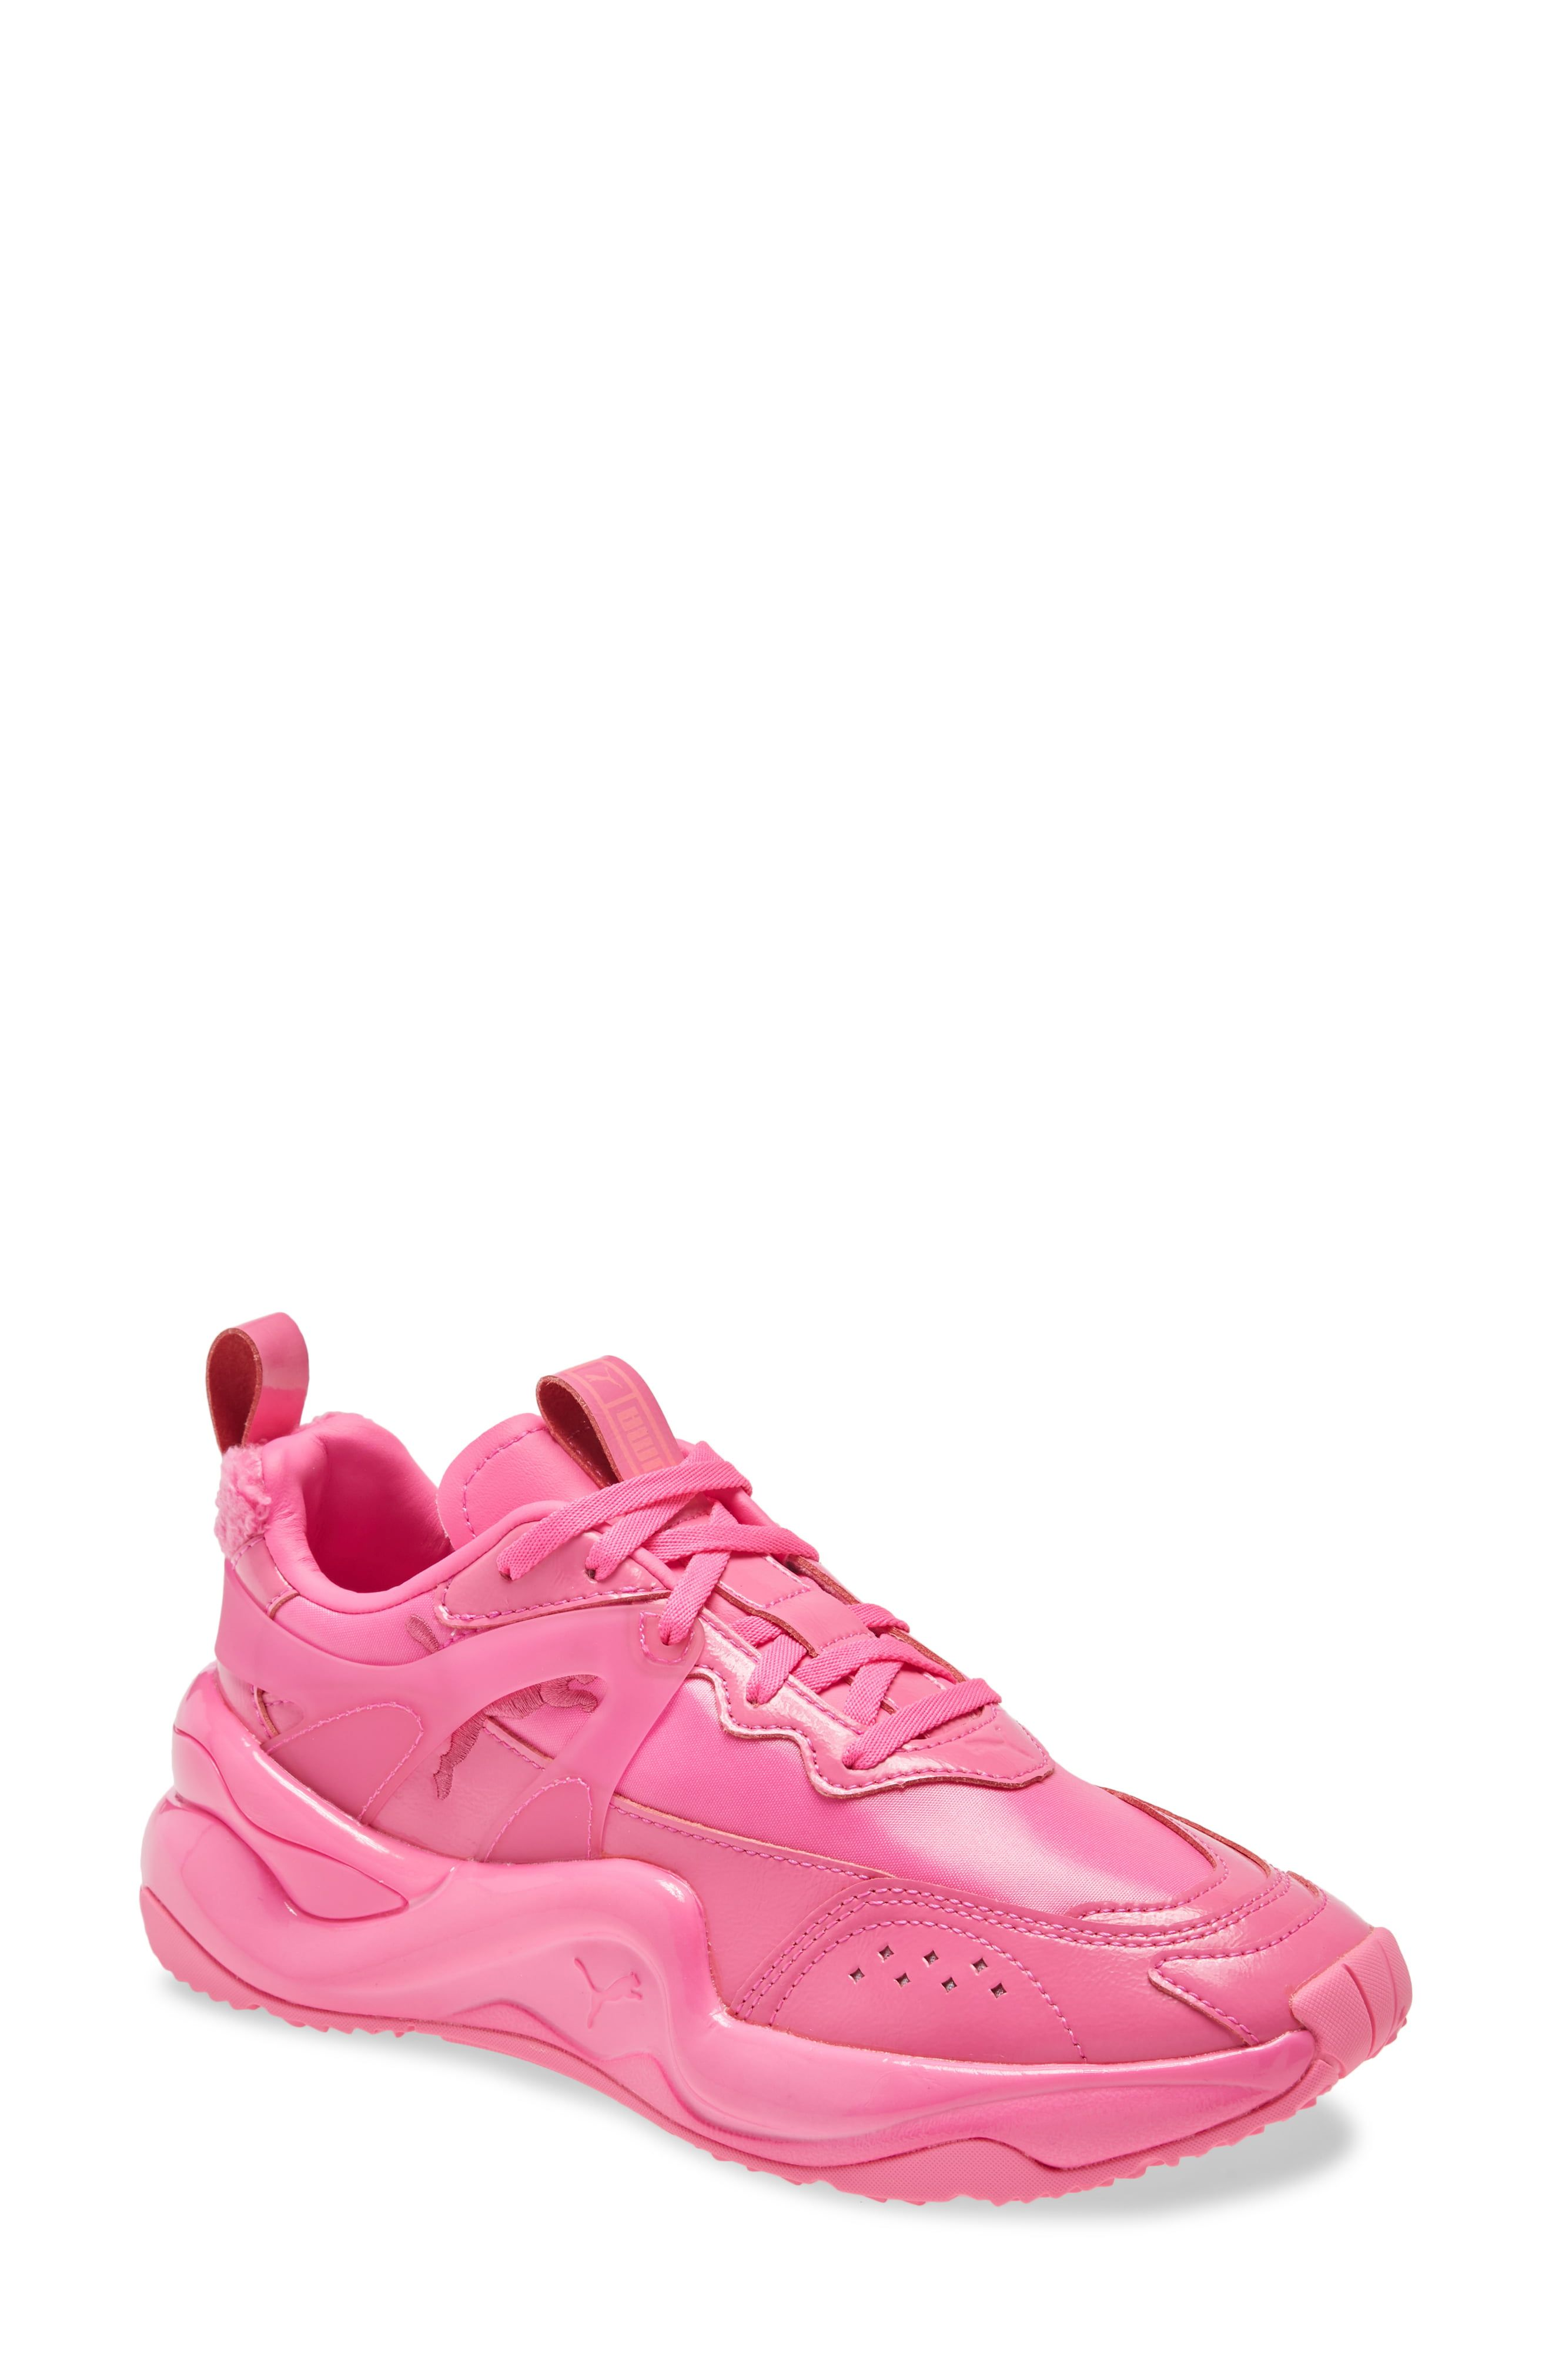 PUMA Rise Pretty Pink Sneaker available